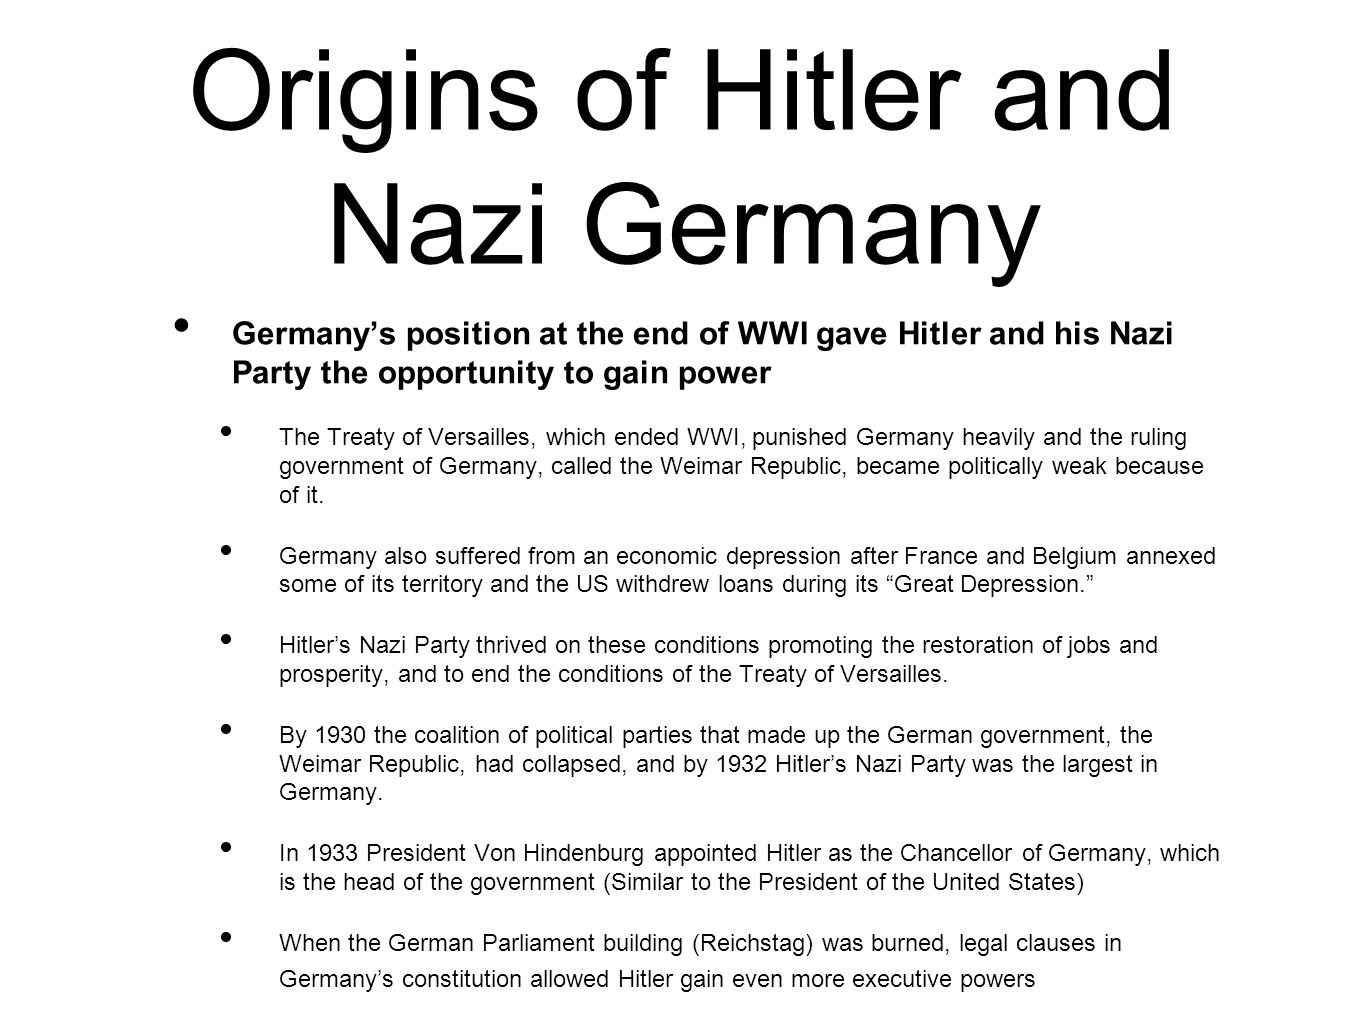 Origins of Hitler and Nazi Germany